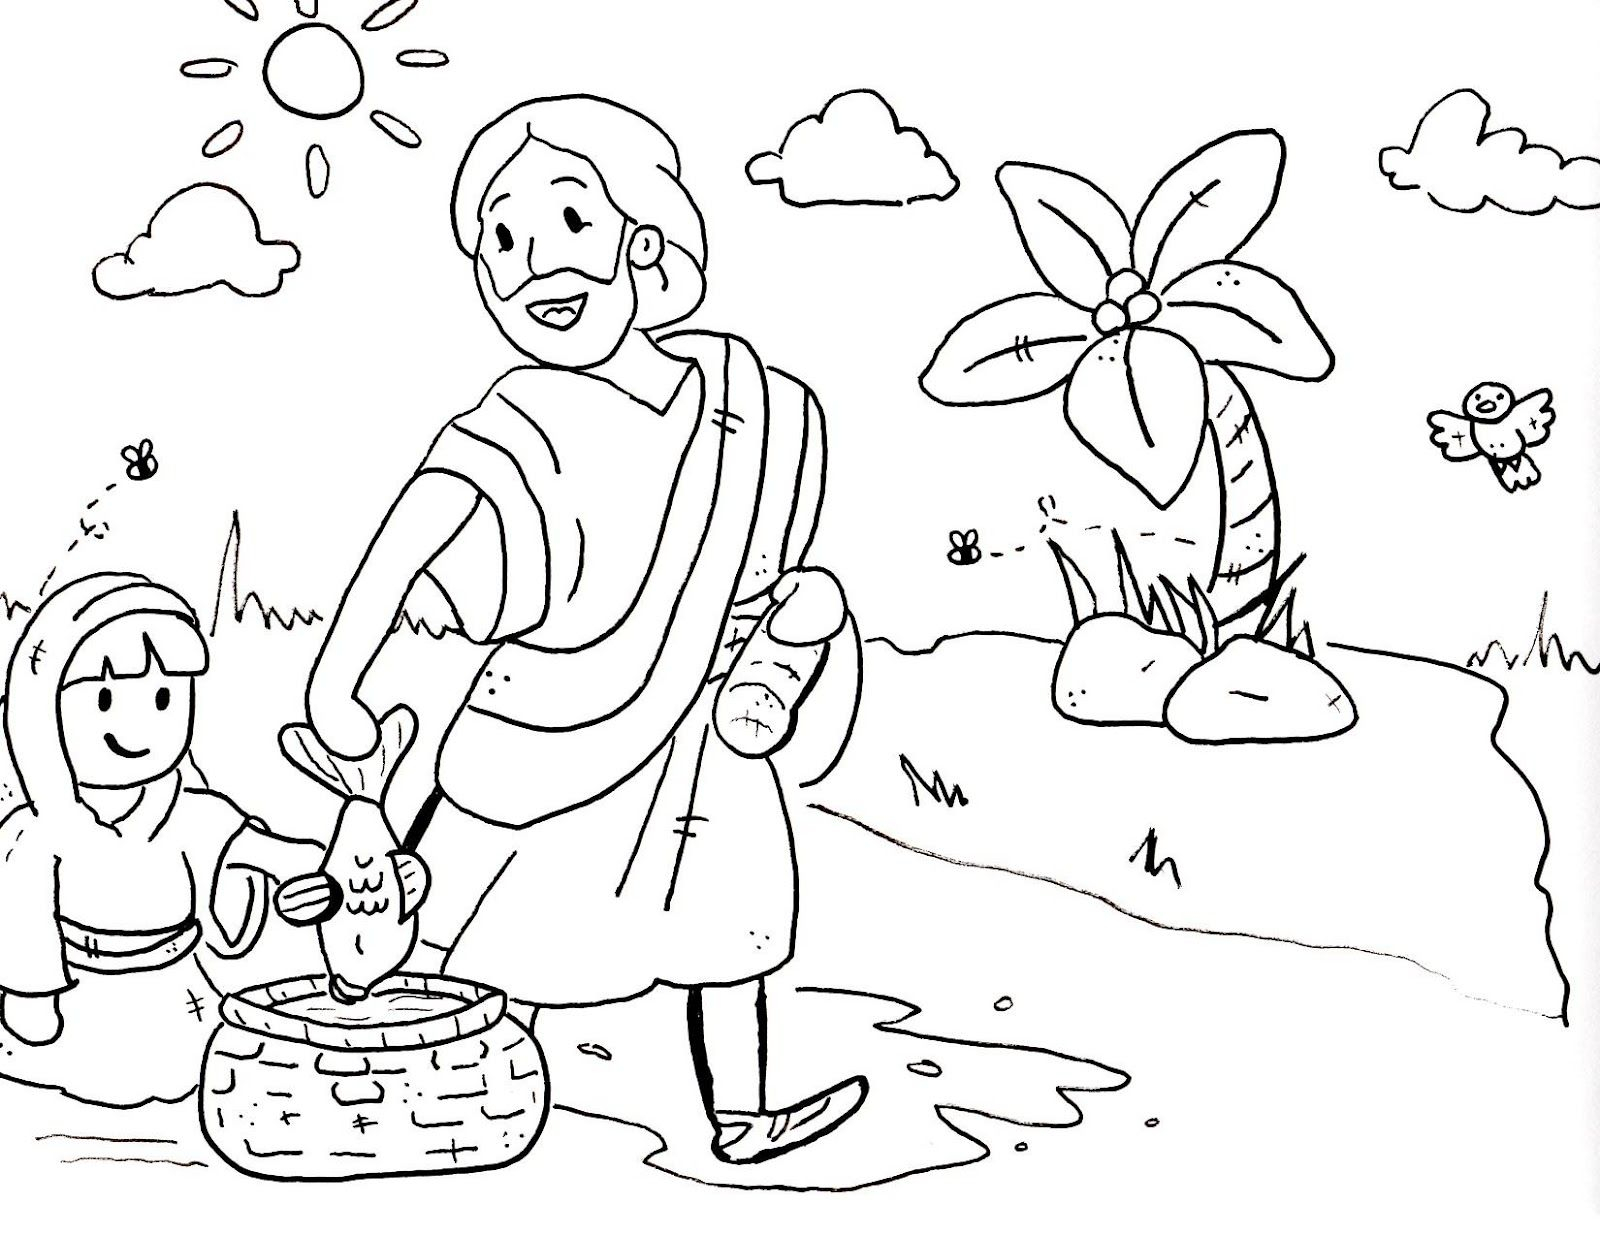 Sunday School Coloring Pages Printable Of Prayer Trust In the Lord Collection